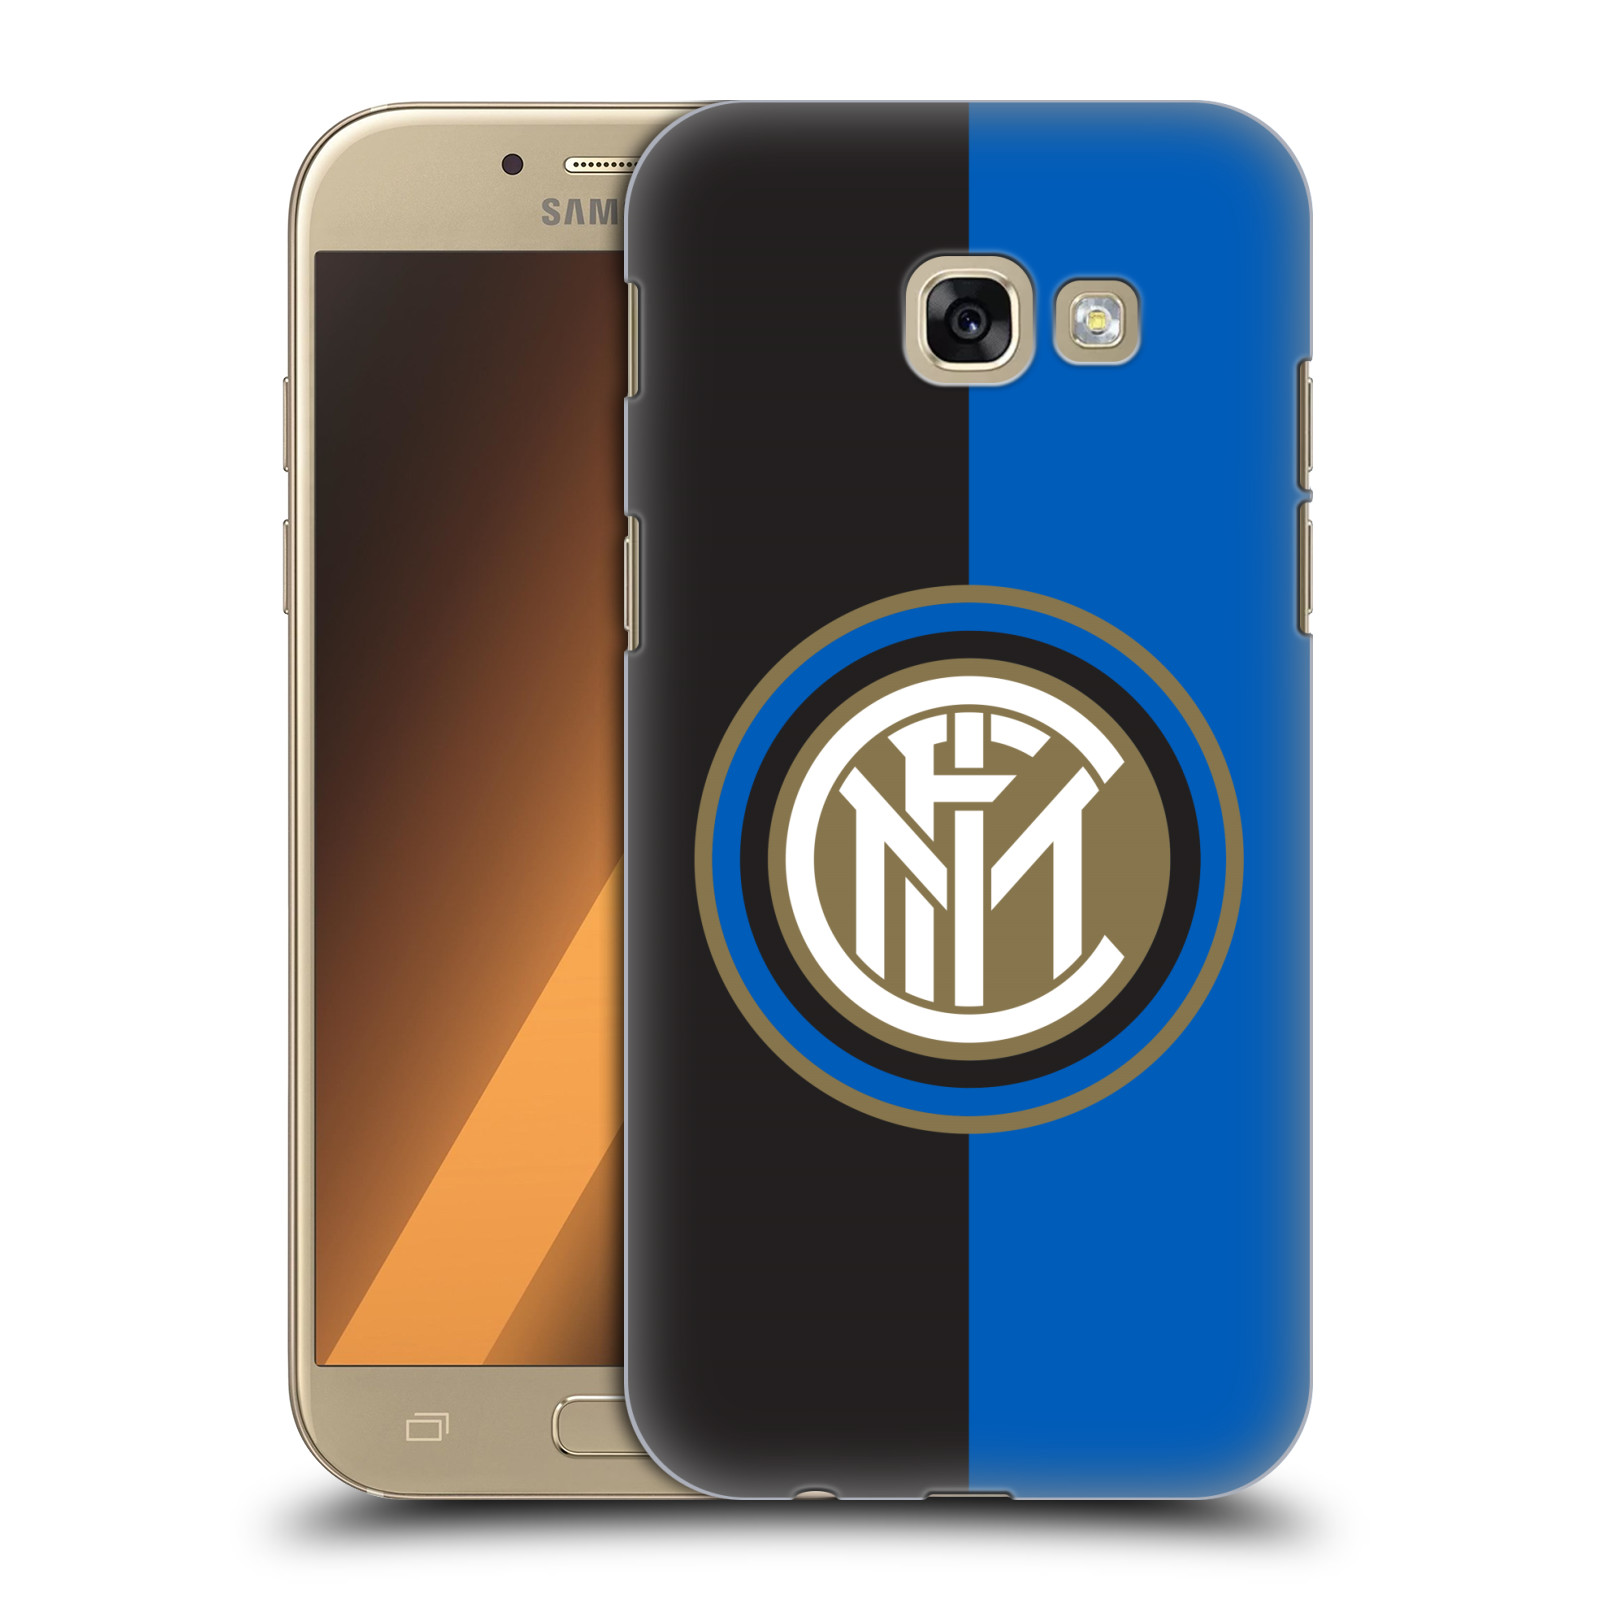 Plastové pouzdro na mobil Samsung Galaxy A5 (2017) - Head Case - Inter Milan - Black and blue